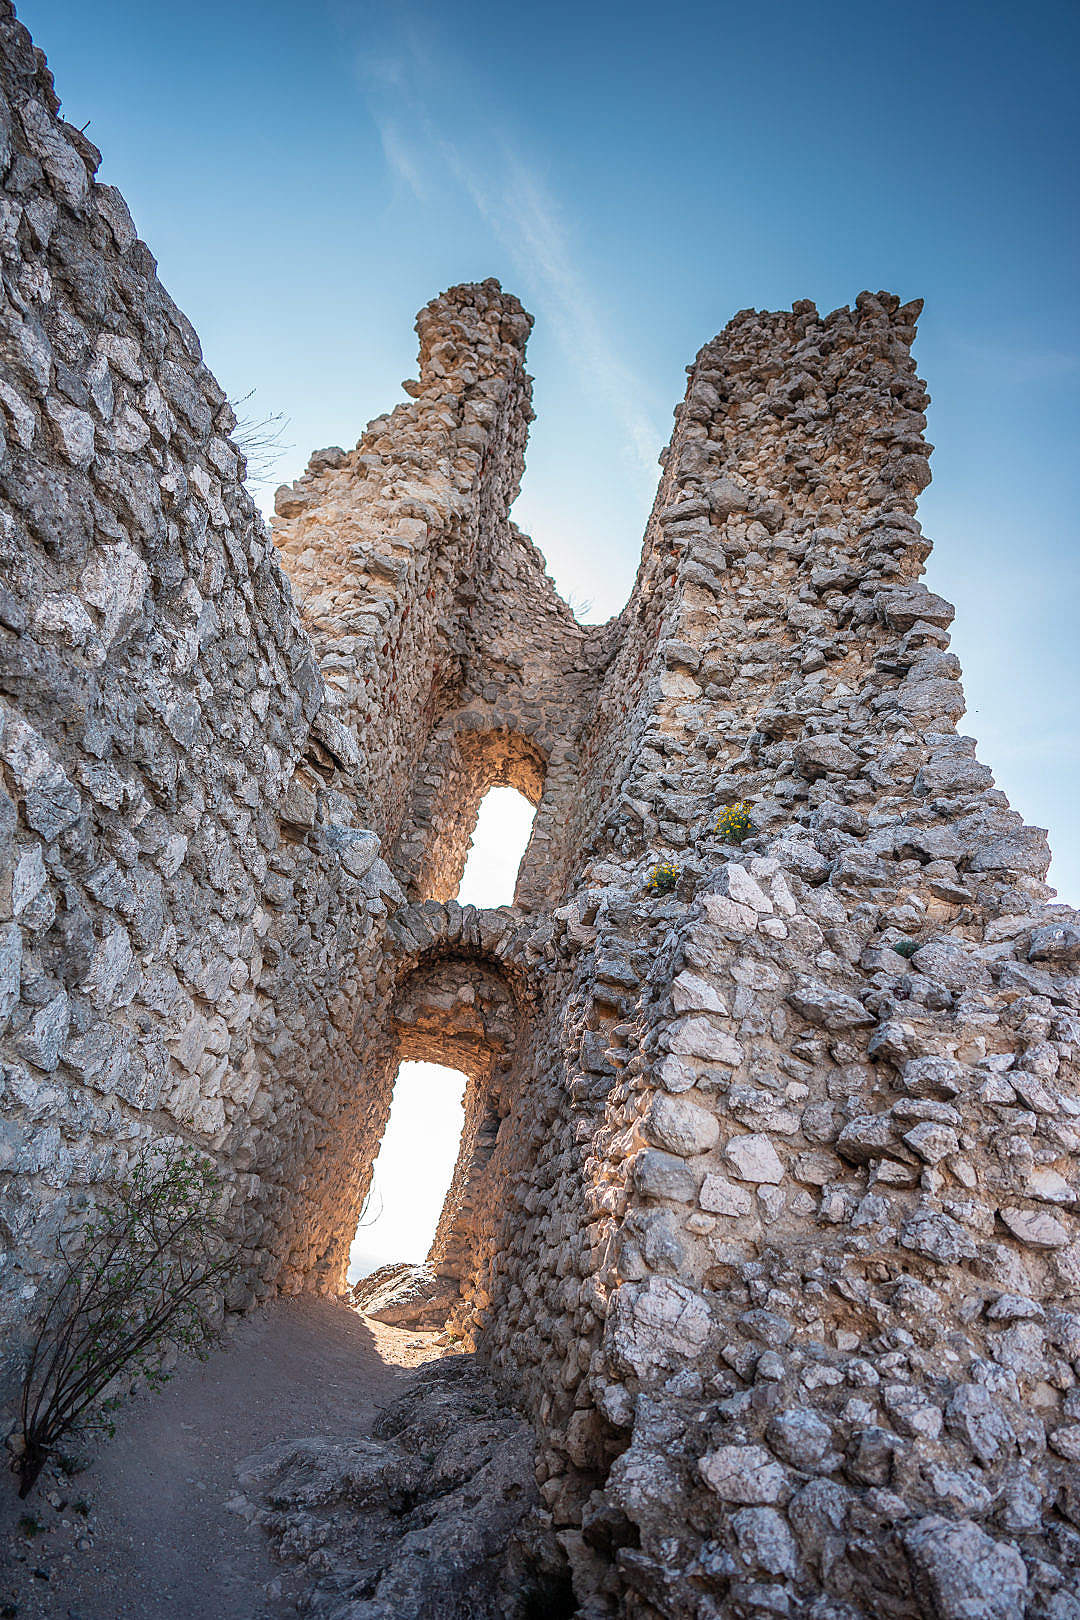 Download Orphan's Castle Ruins in Klentnice, Czechia FREE Stock Photo